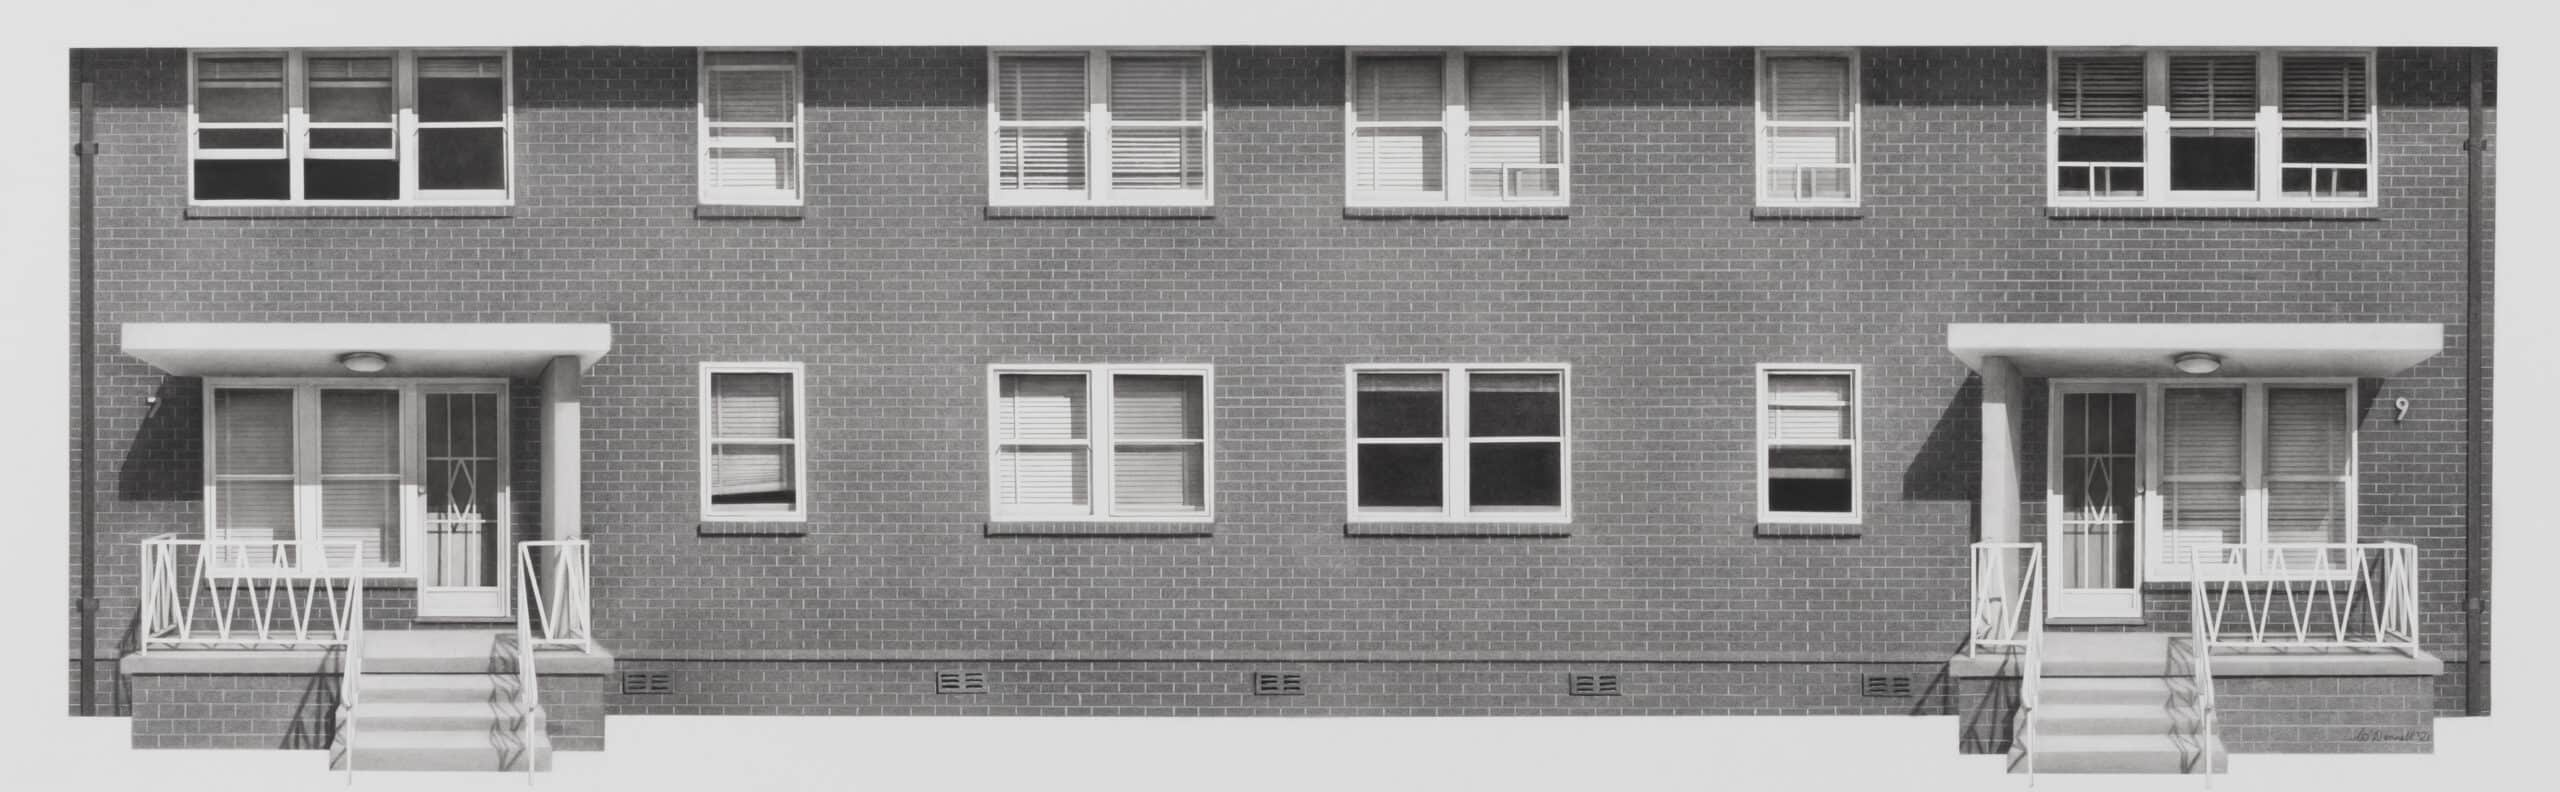 Catherine O'Donnell, 'Still Lives', 2021, charcoal and graphite on paper, 47 x 110 cm framed with museum glass